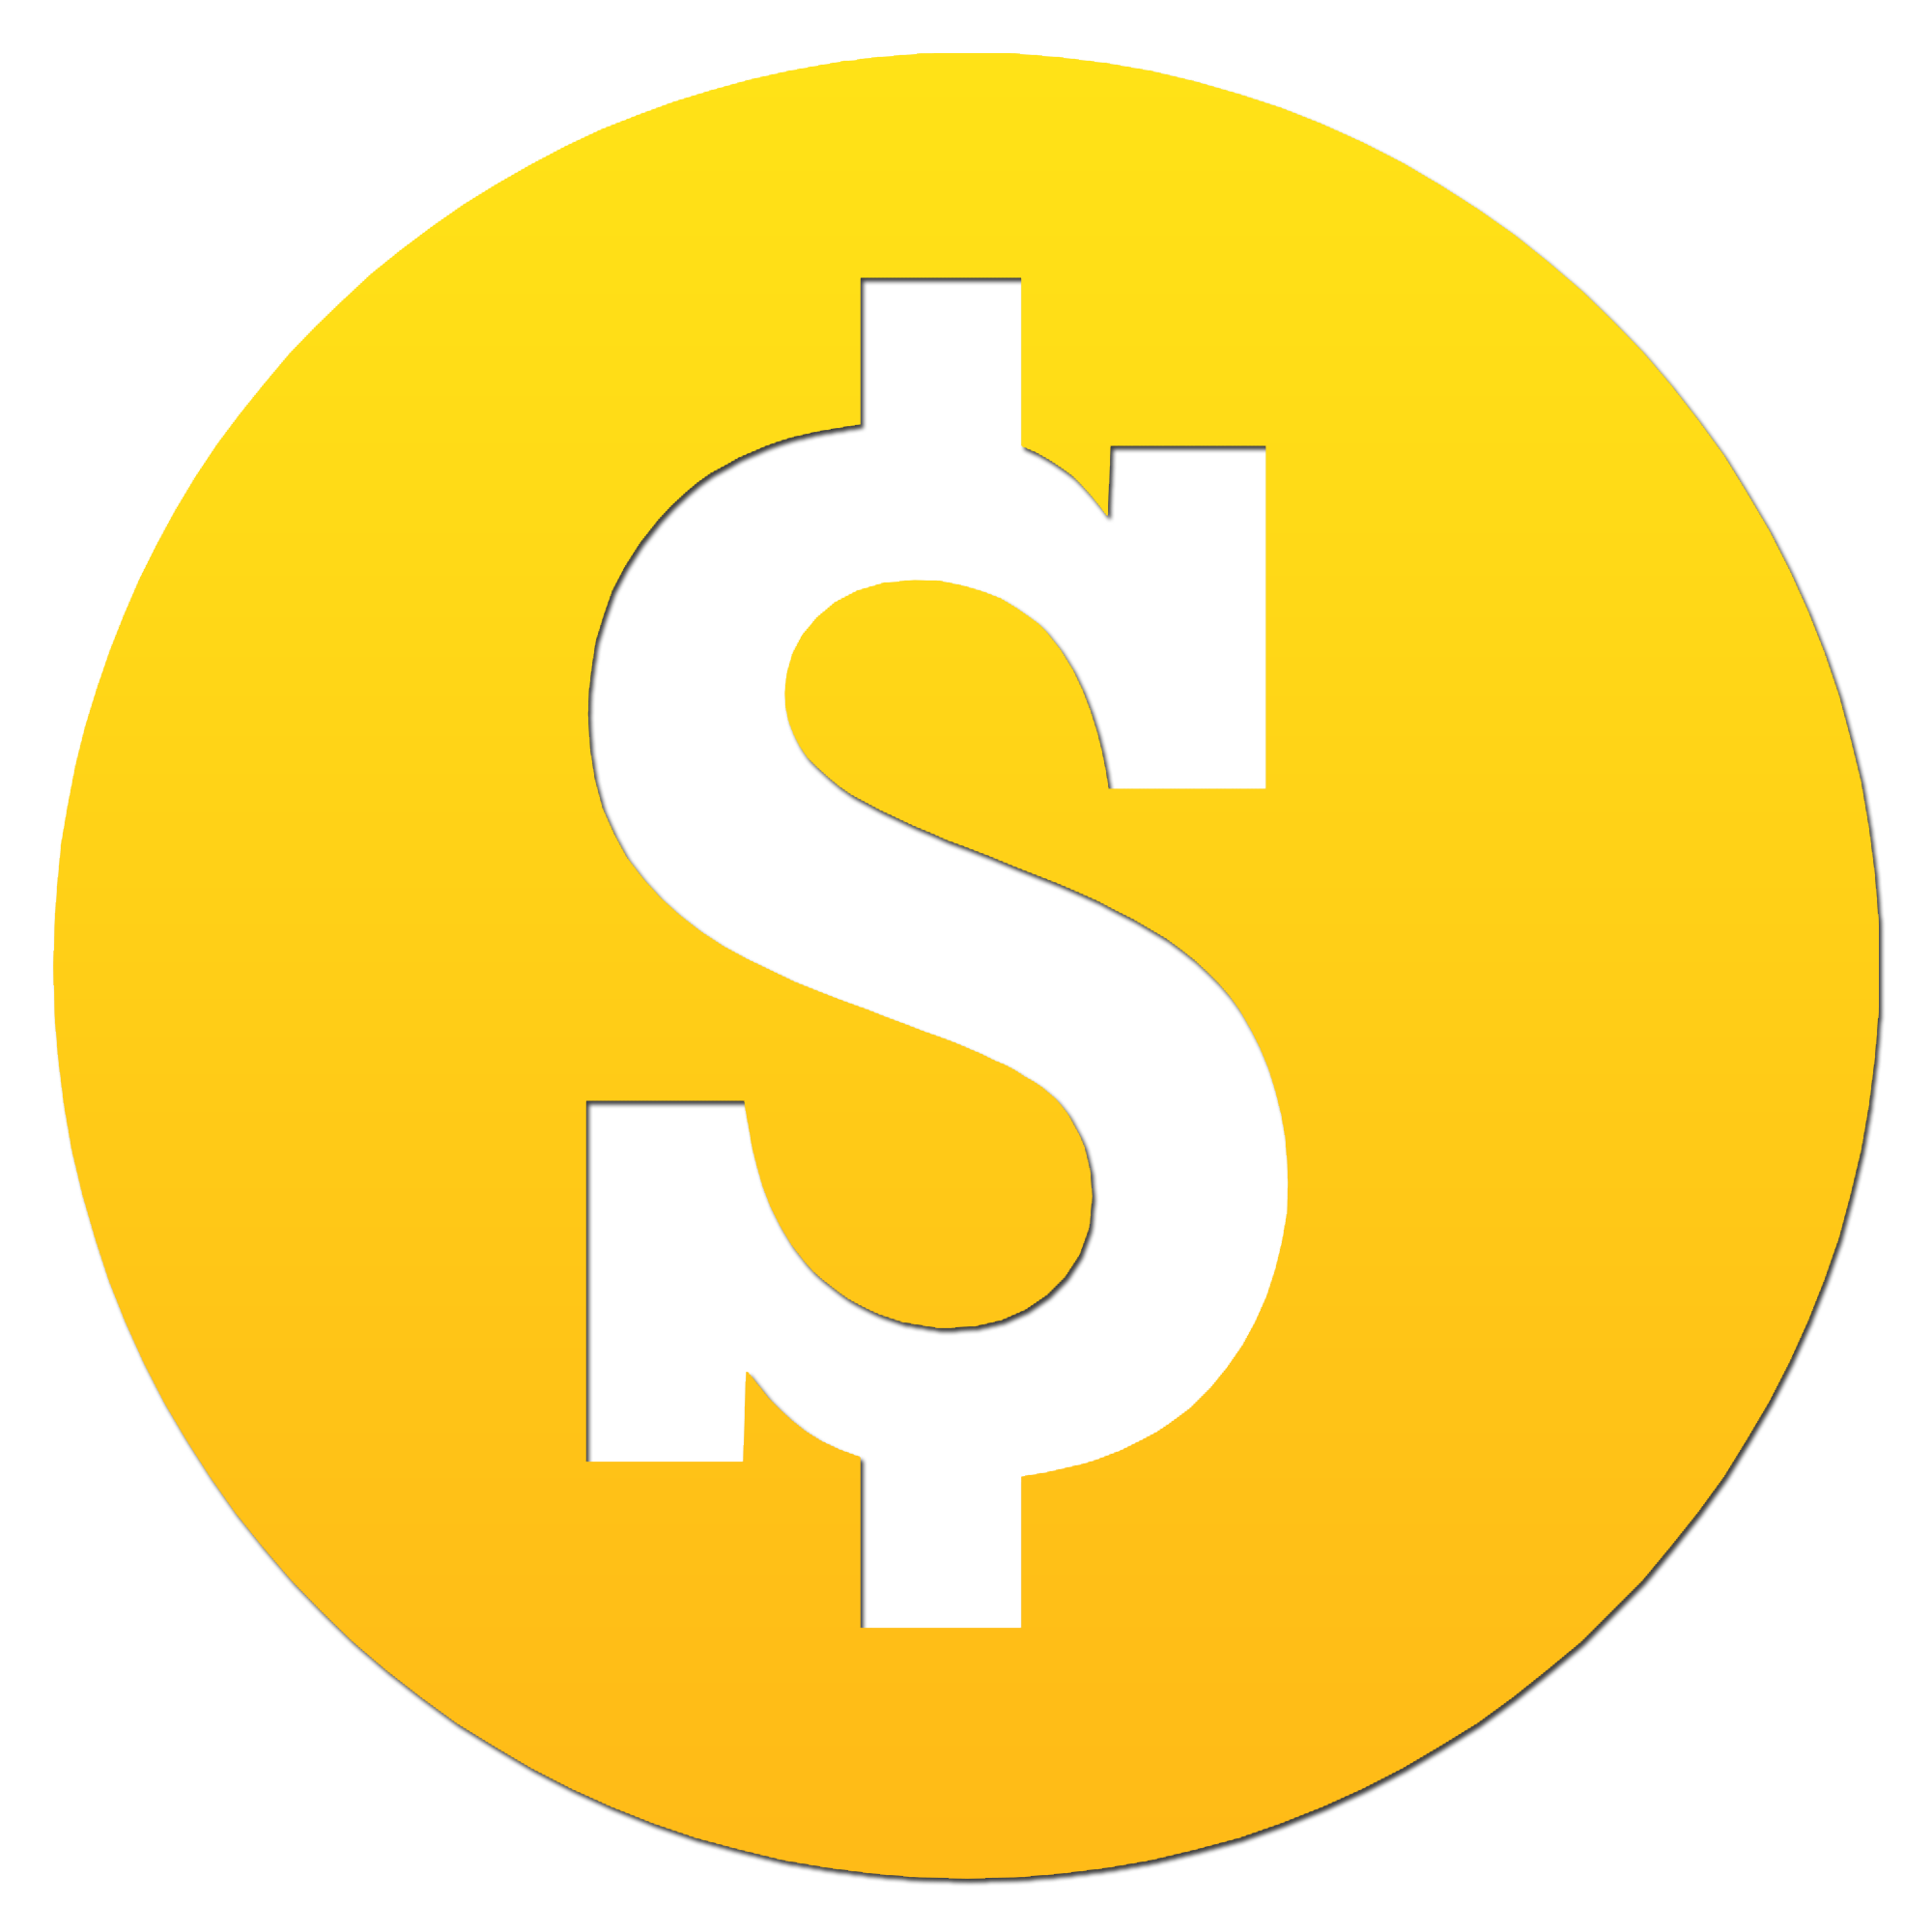 Dollar Sign Icon Png #3550.